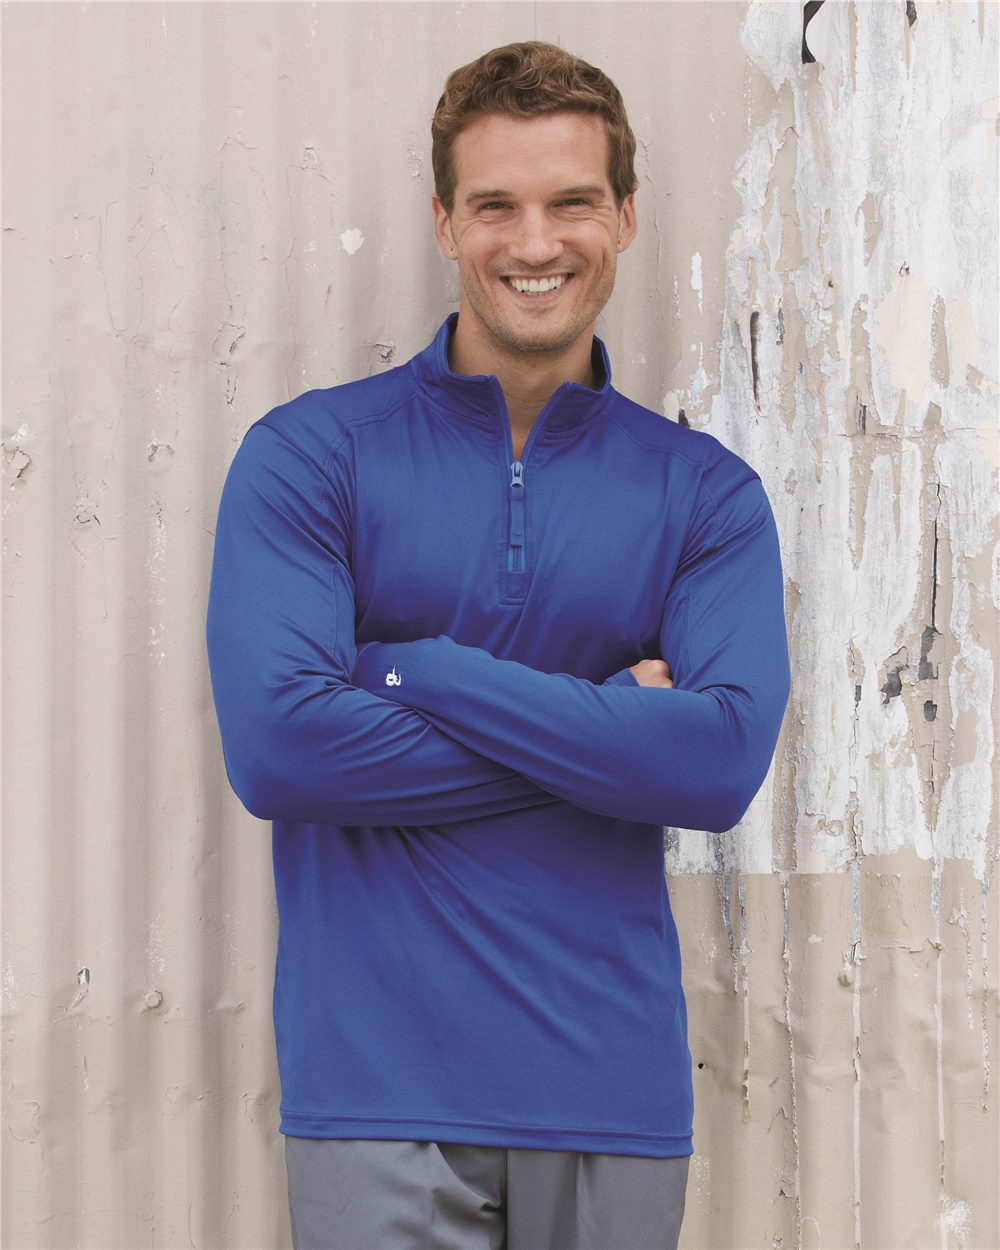 Badger - BG4280 Light Weight Pullover 1/4 Zip